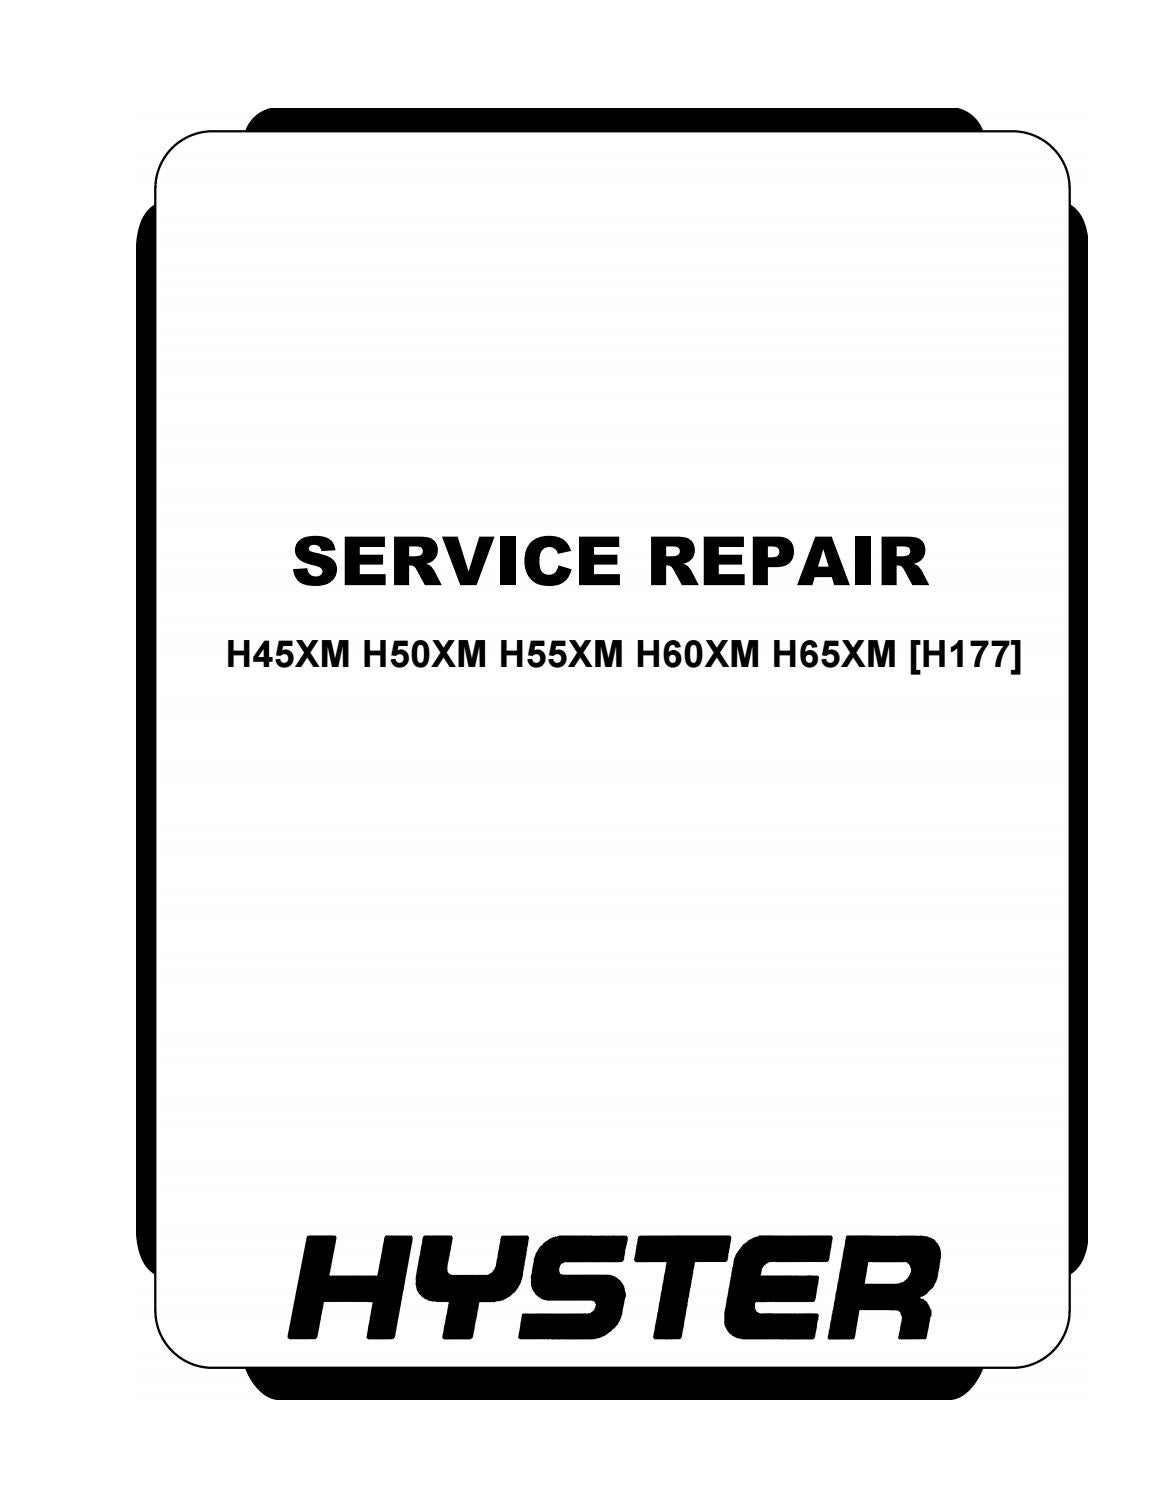 Hyster H65XM (H177) Forklift Service Repair Manual by 163114103 - issuu   Hyster 65 Forklift Wiring Diagram      Issuu